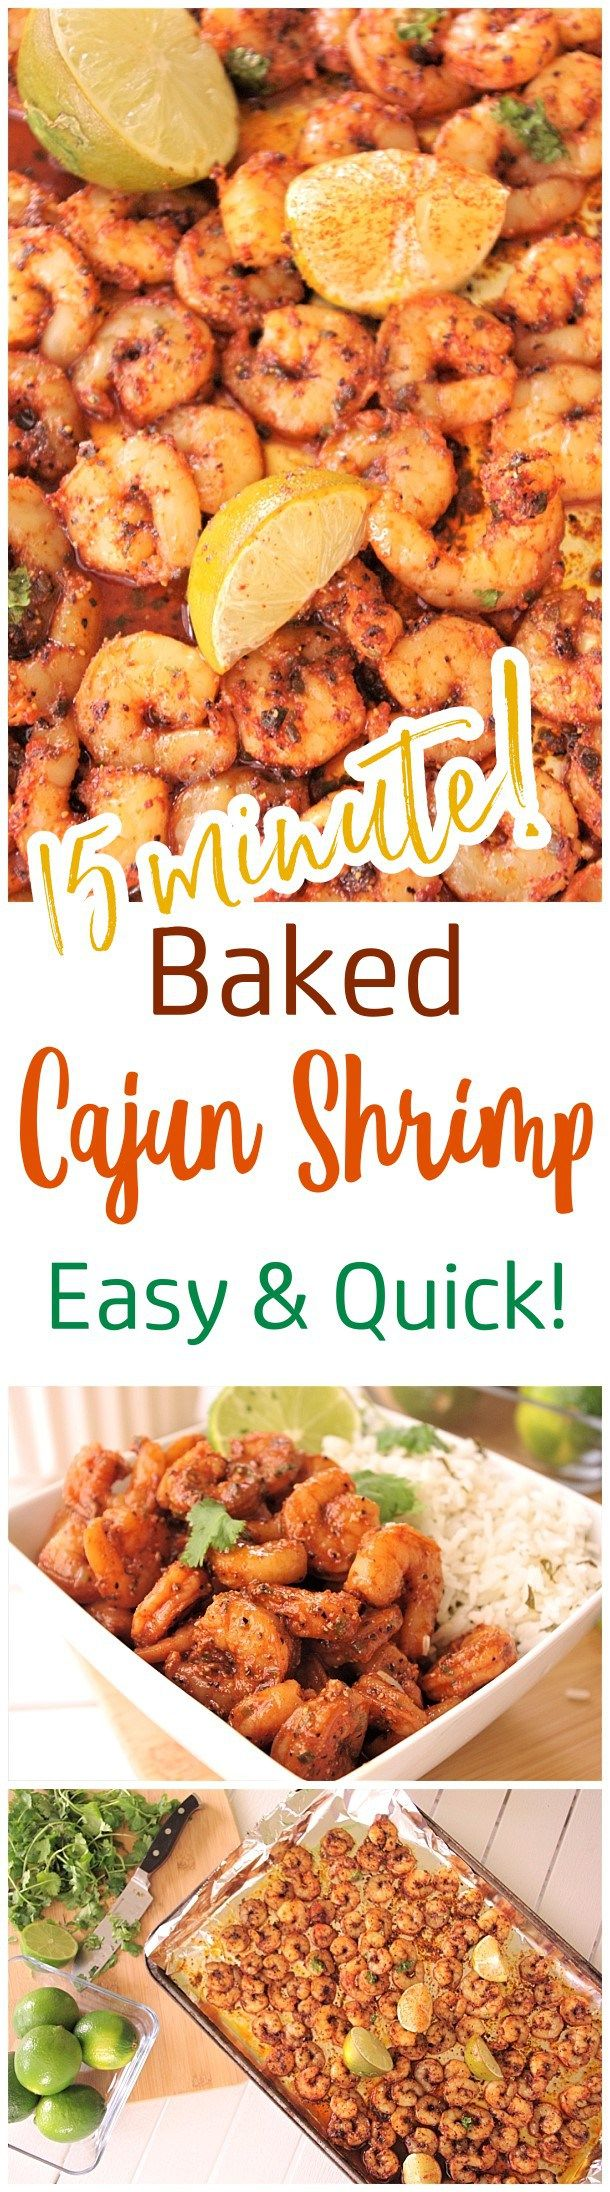 Baked Sheet Pan Cajun Shrimp Entree Recipe - 15 minutes and so delicious! Use it in tacos, meal prep bowls, or over rice or noodles. So versatile and the flavor is so yummy you'll want to eat the entire pan by itself! - Dreaming in DIY